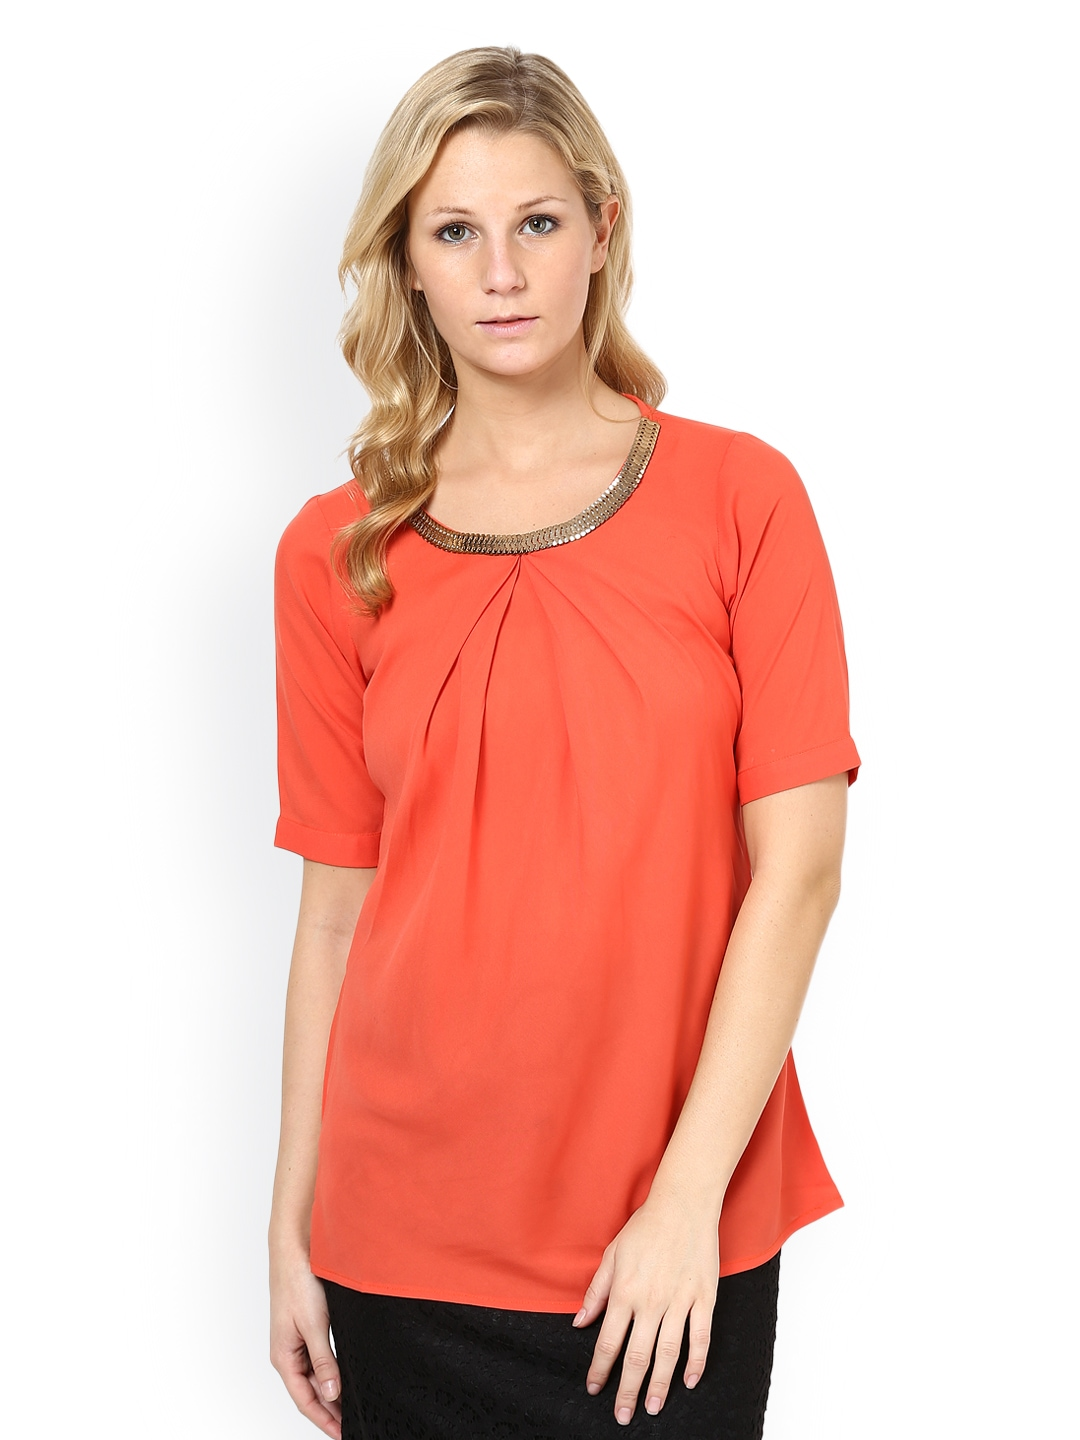 Flared Coral Front Long Top Womens Knot Bow Tunic Tee Dress Swing Ruched Sleeve Ladies ___. a.m. North Korea's state media have reported the visit of U.S. Secretary of State Mike Pompeo a day after he arrived in Pyongyang but did not describe the nature of his talks with North Korean officials over the future of the country's nuclear weapons program.